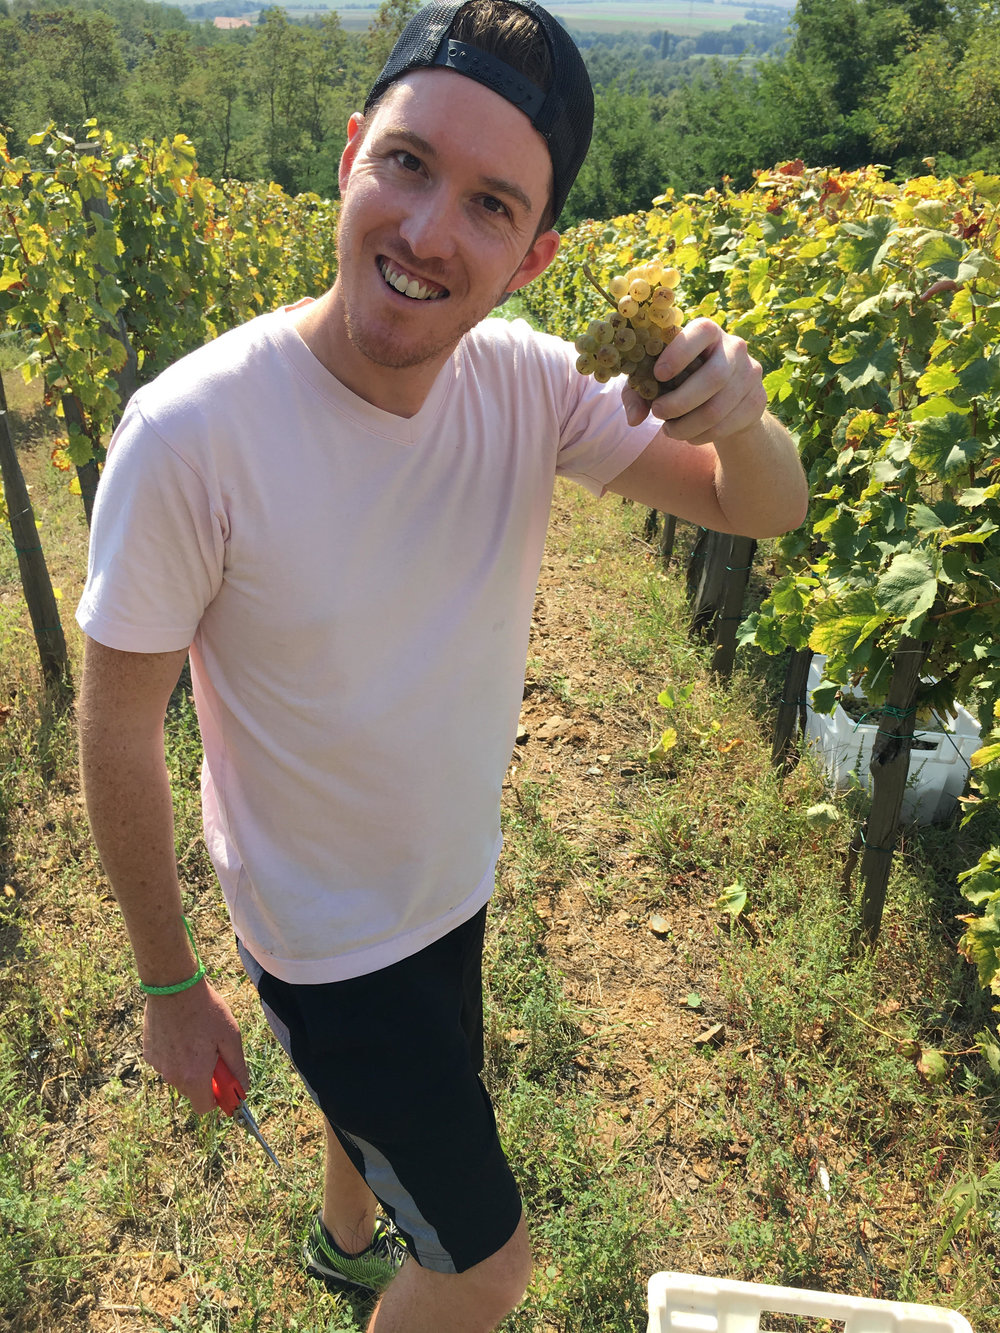 A little harvesting action in the Sontacchi vineyards in Kutjevo, Slavonia, Croatia